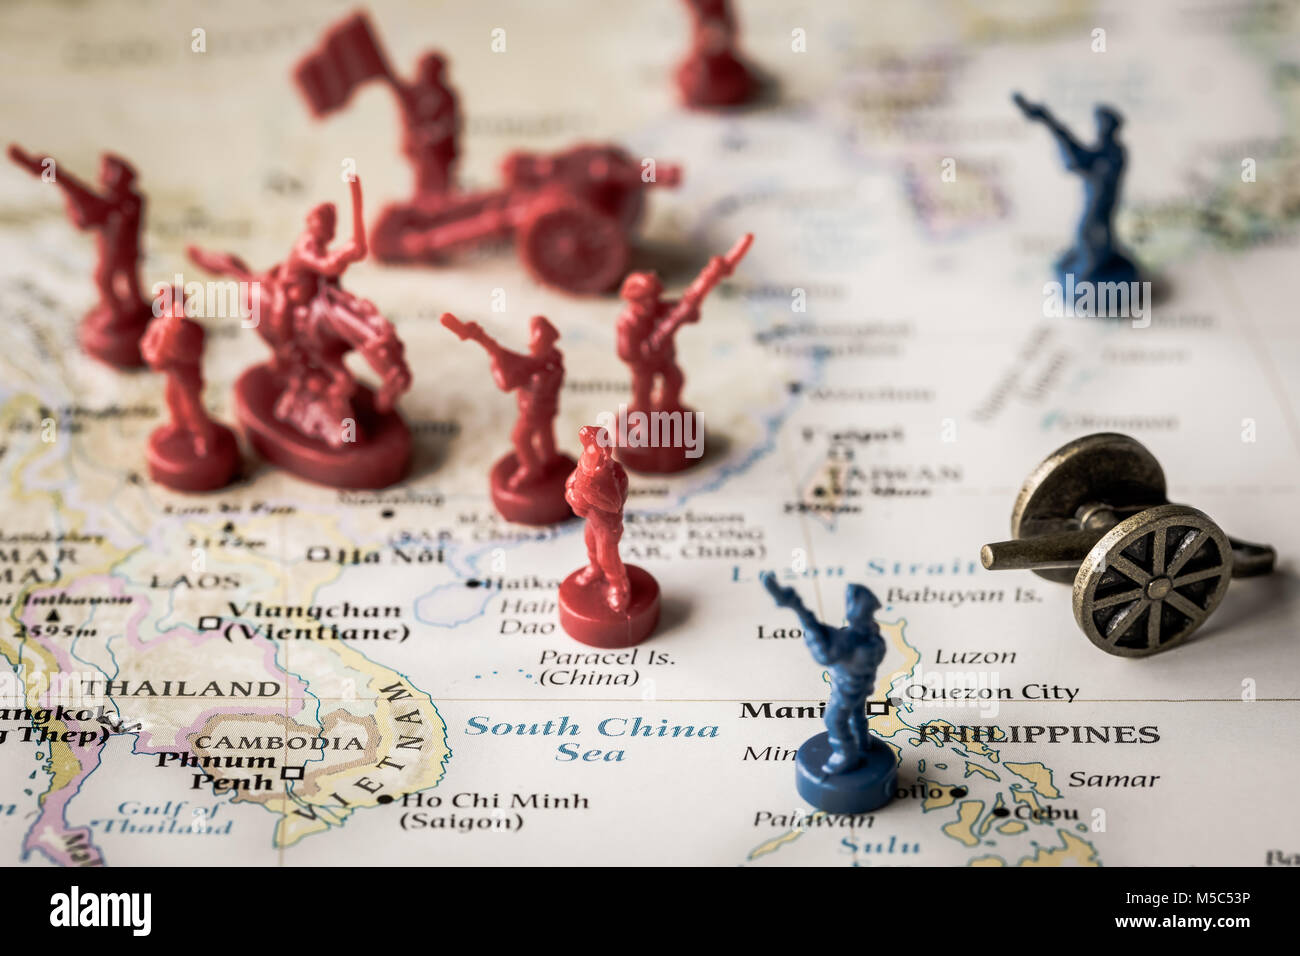 Macro close up of toy soldiers on a map representing conflict and tensions in the South China Sea Stock Photo